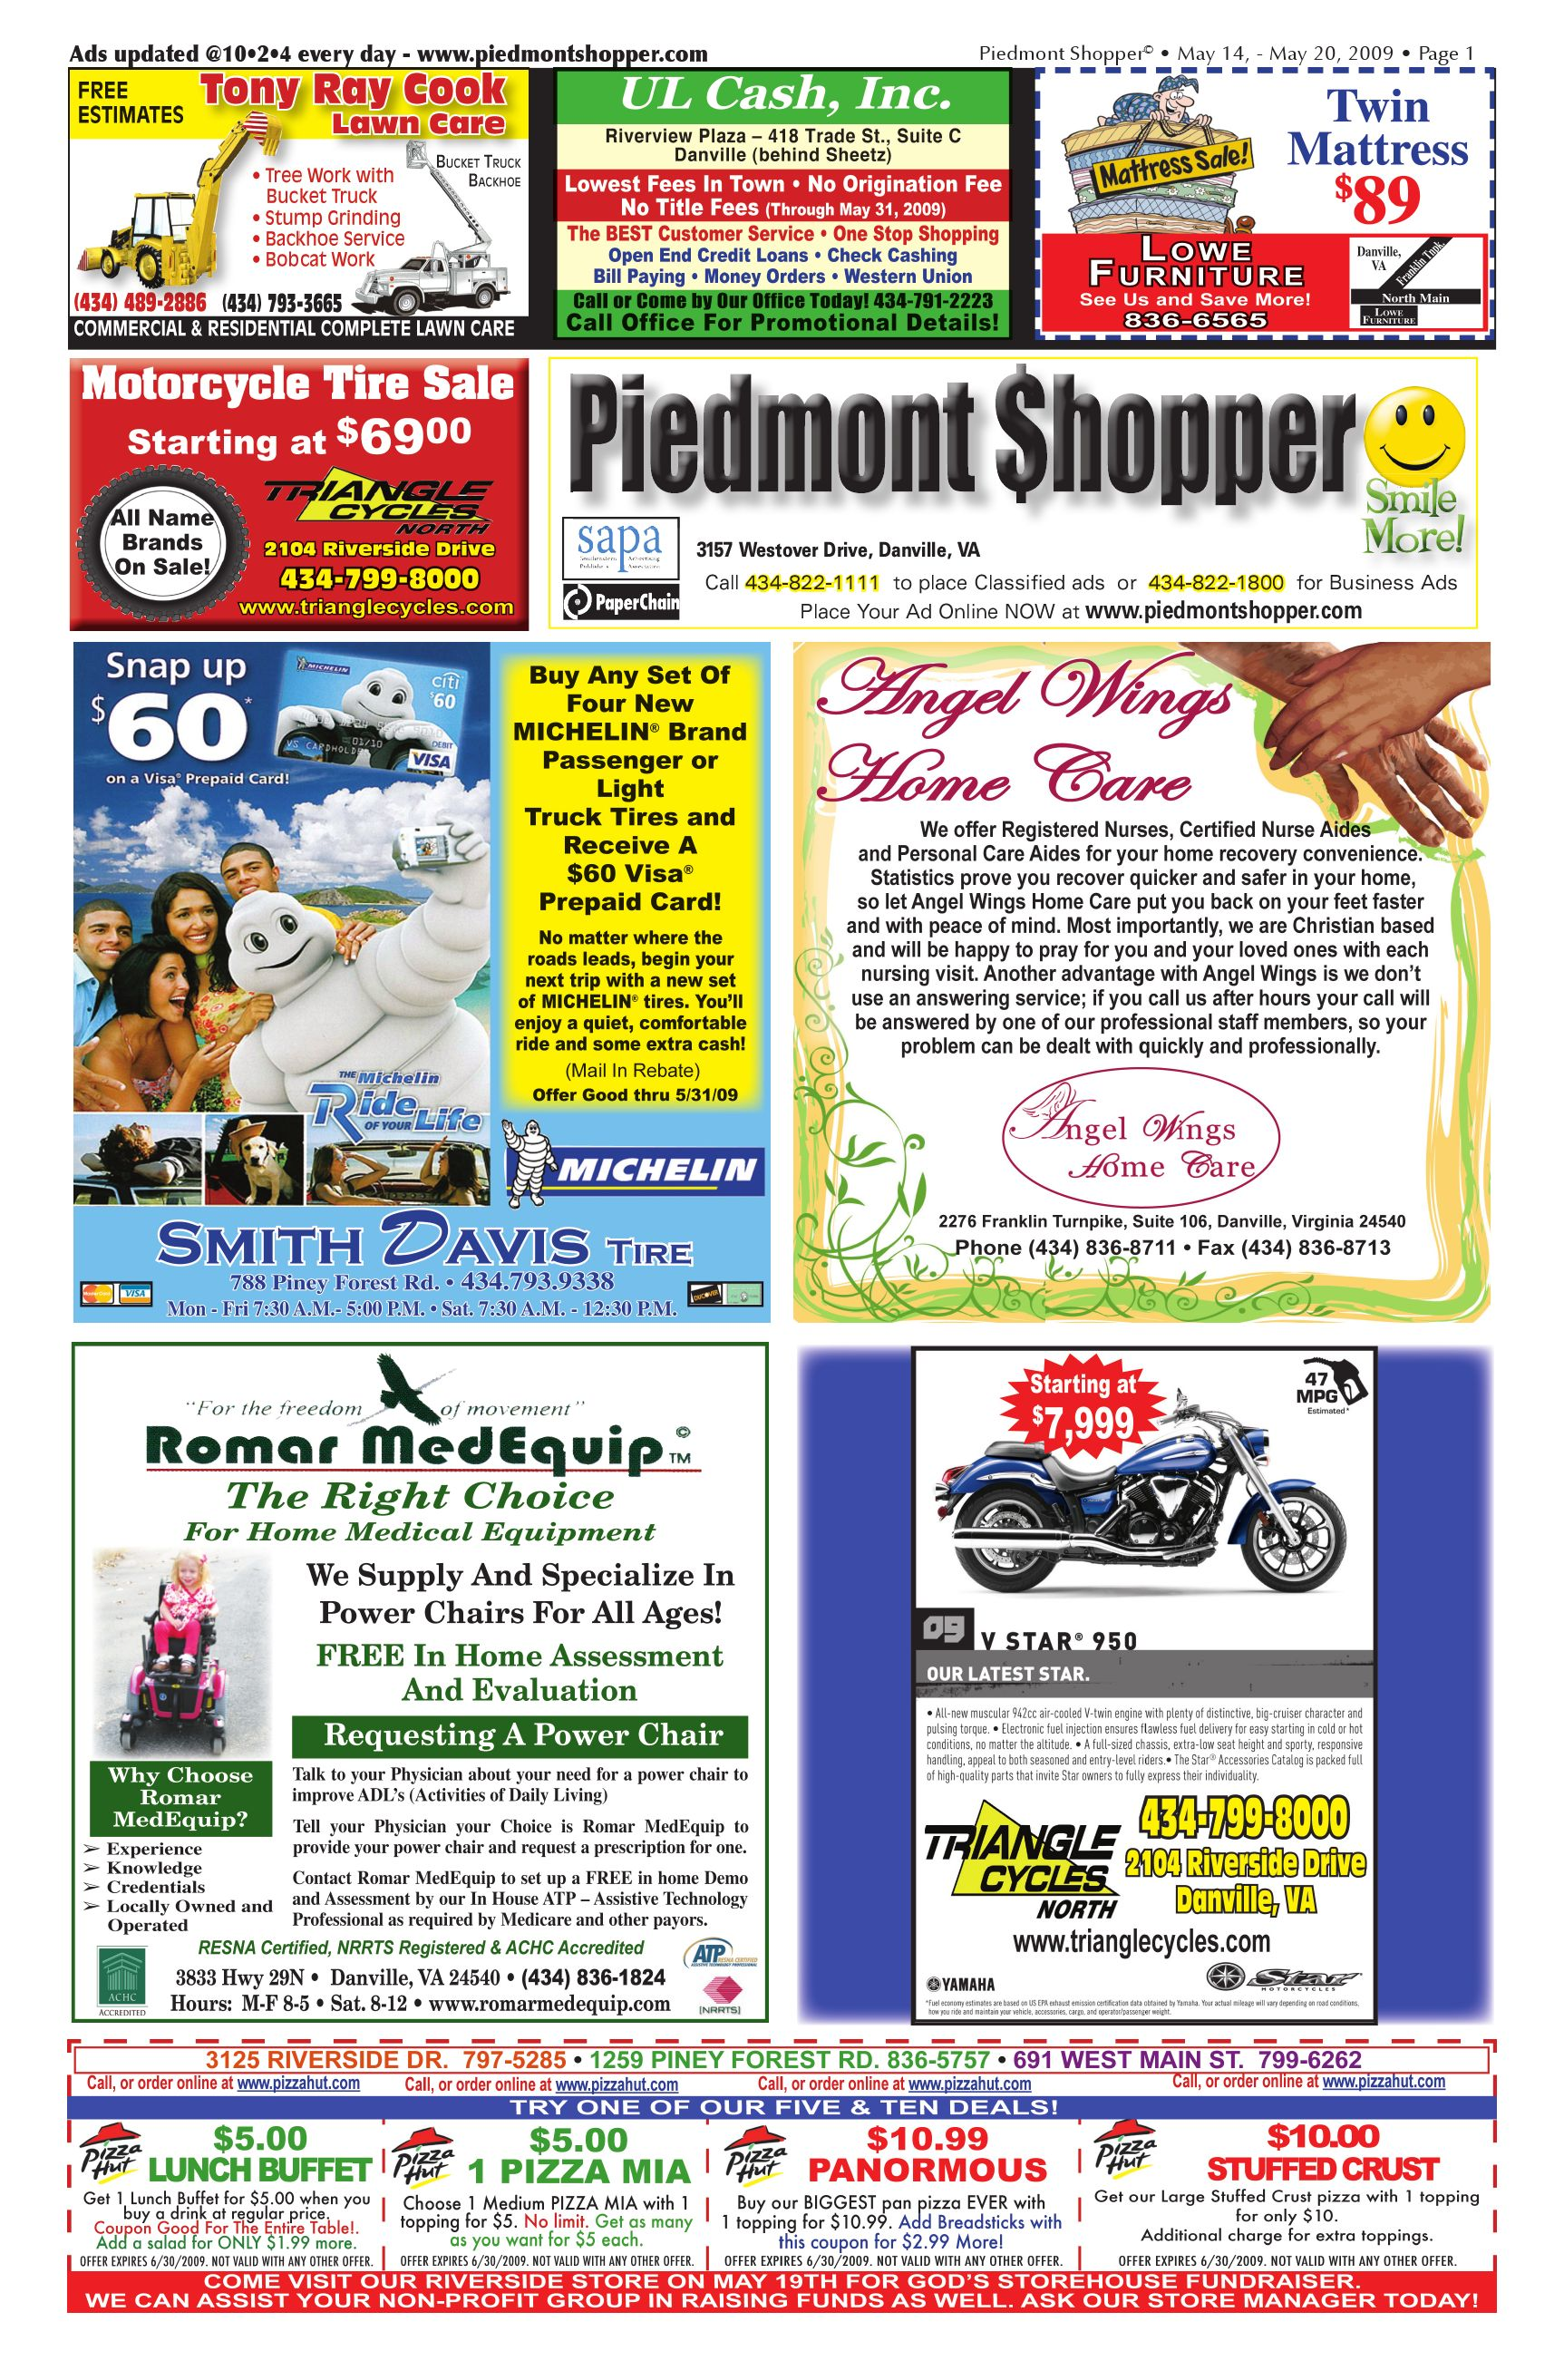 Piedmont Shopper 51409 By Alan Lingerfelt Issuu Injen Focus Fuse Box Cover